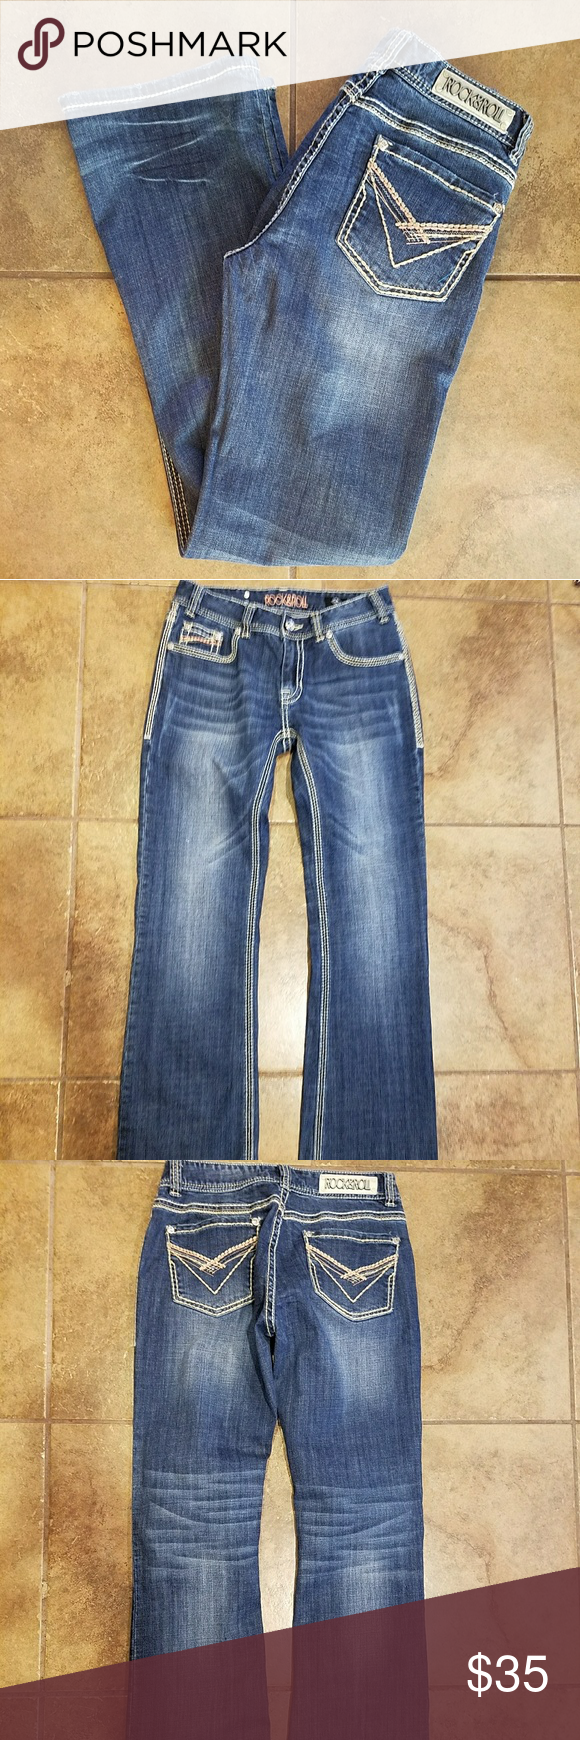 c60f3593193 Rock   Roll Cowgirl Denim Jeans Gently used